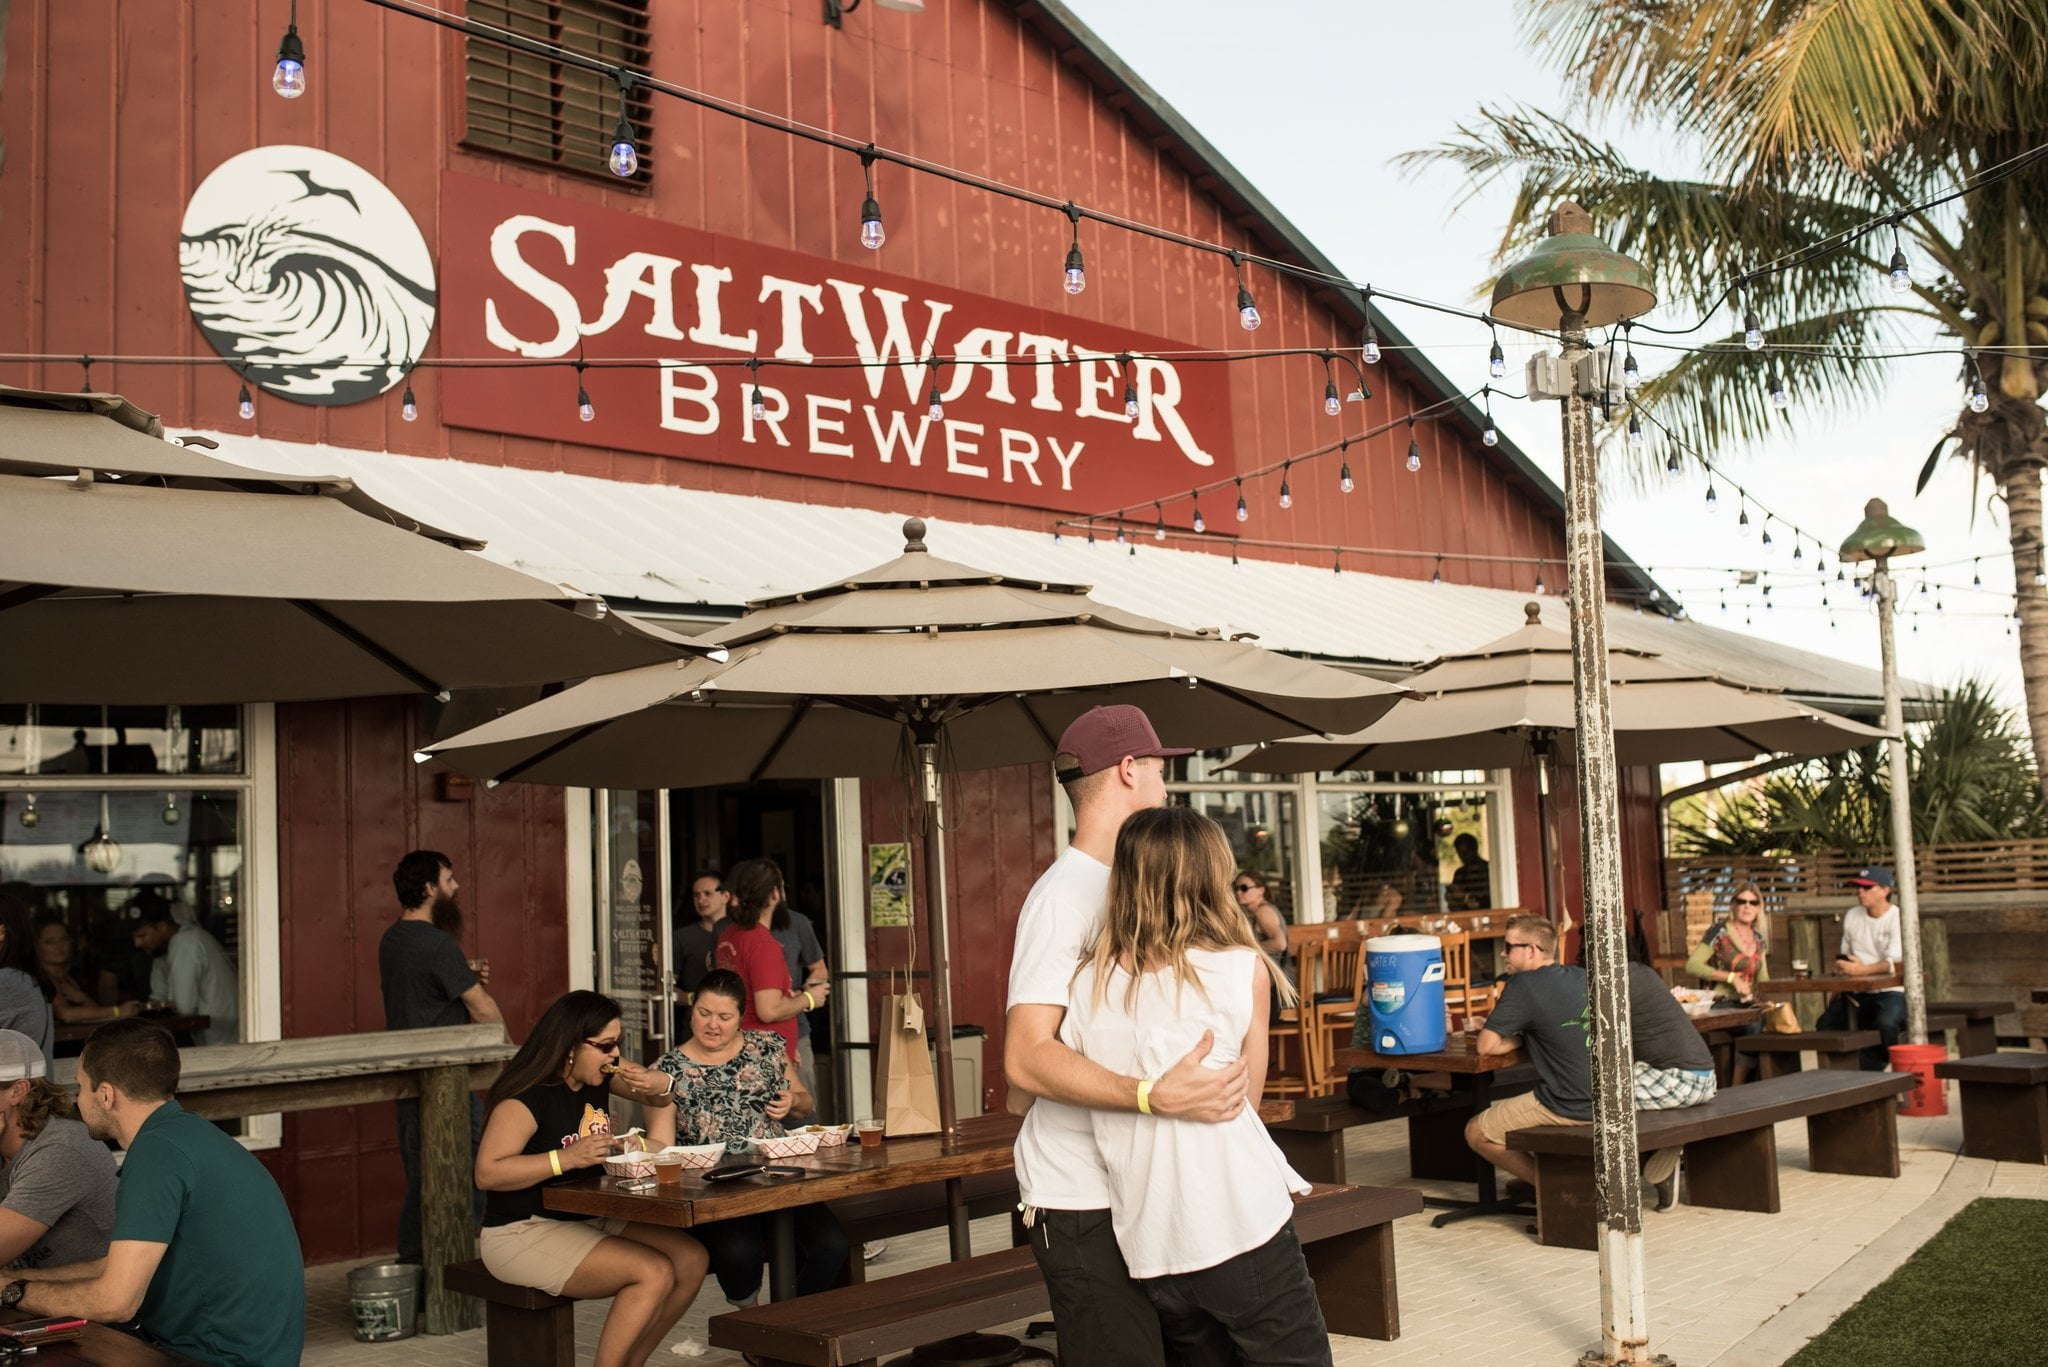 What's Brewing at Saltwater Brewery - July 18th